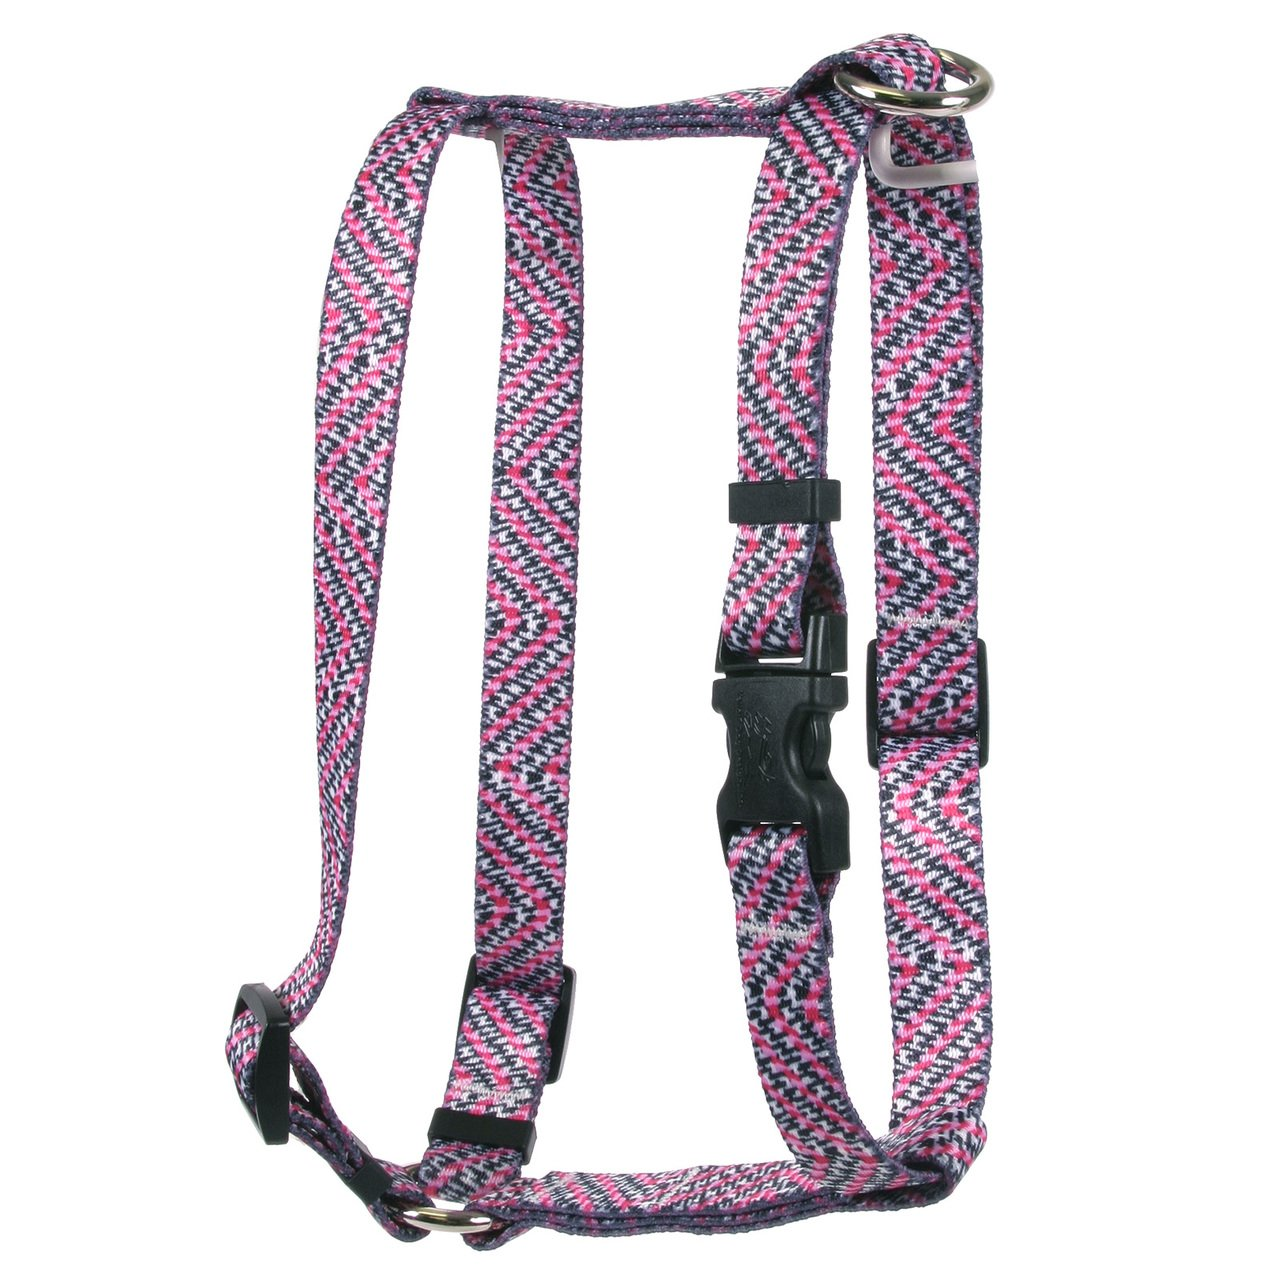 Yellow Dog Design Pink Tweed Roman Style H Dog Harness, Small/Medium-3/4 Wide and fits Chest of 14 to 20''